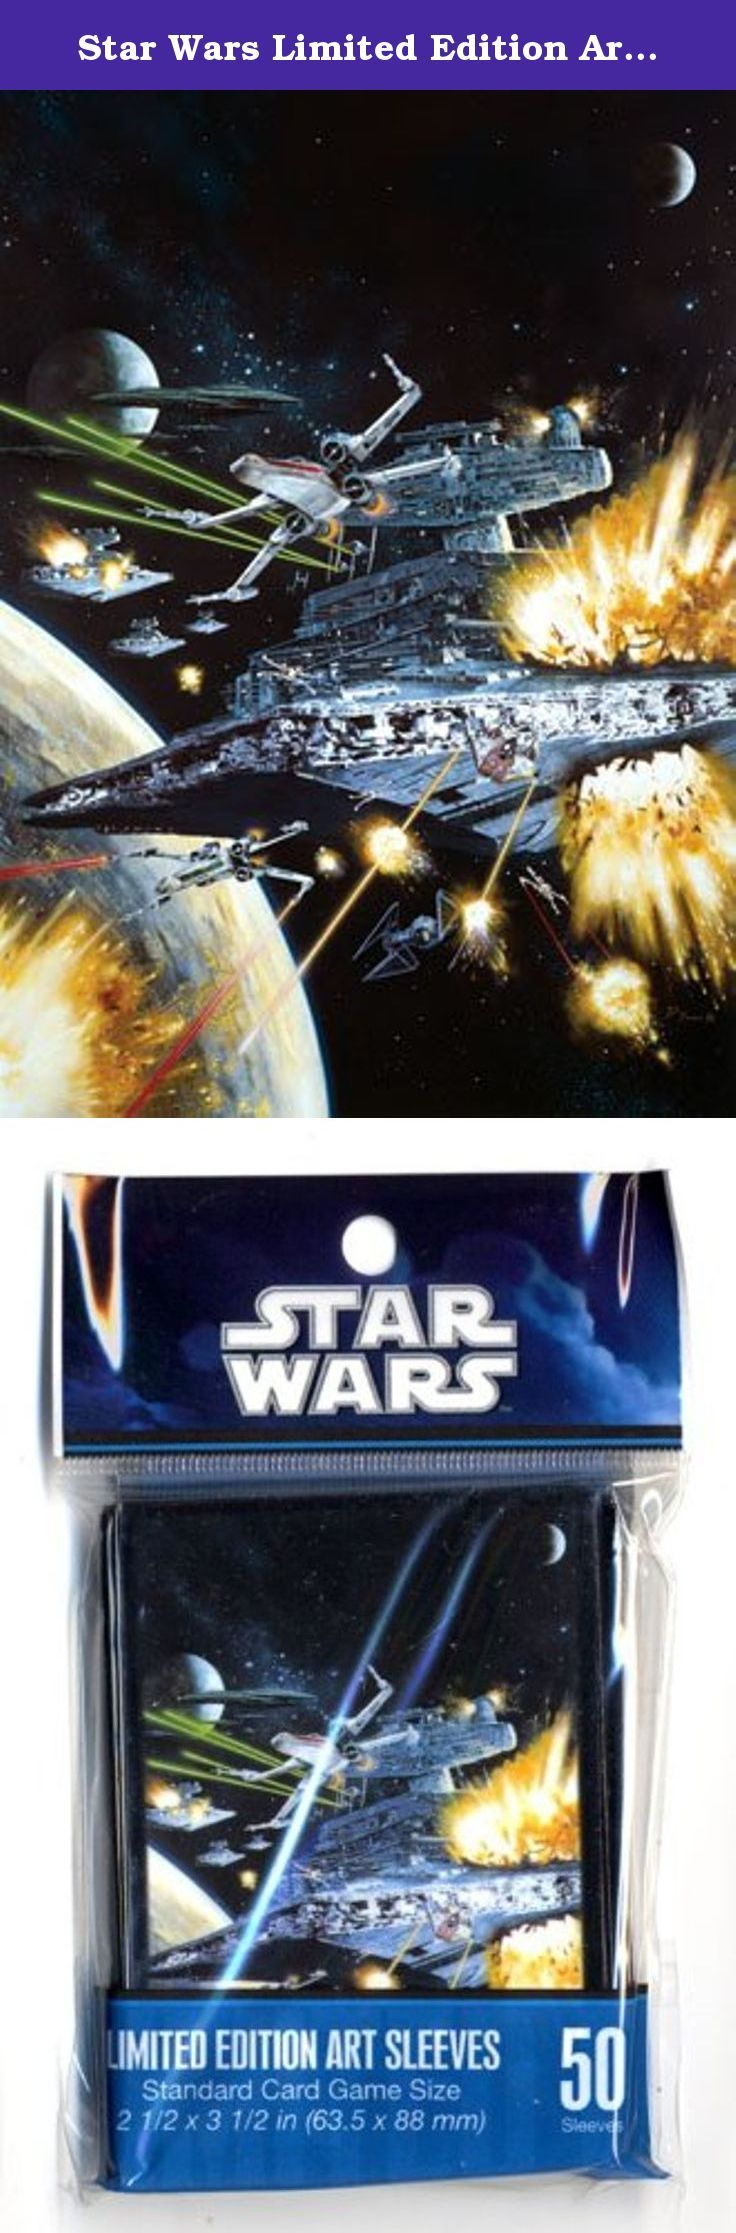 Star Wars Limited Edition Art Sleeves X-Wing Assault. FFGSWS05 X-wing Assault LE Art Sleeves by Fantasy Flight Games Use the Force to protect your cards! Fantasy Flight Supply presents Star Wars Art Sleeves in six thematic designs, offering players new ways to shield their valuable cards as they simultaneously evoke dramatic space battles, dashing rogues, heroic mentors, and menacing villains. These attractive, high-quality sleeves come in packs of 50 and are made of 100 micron-thick...